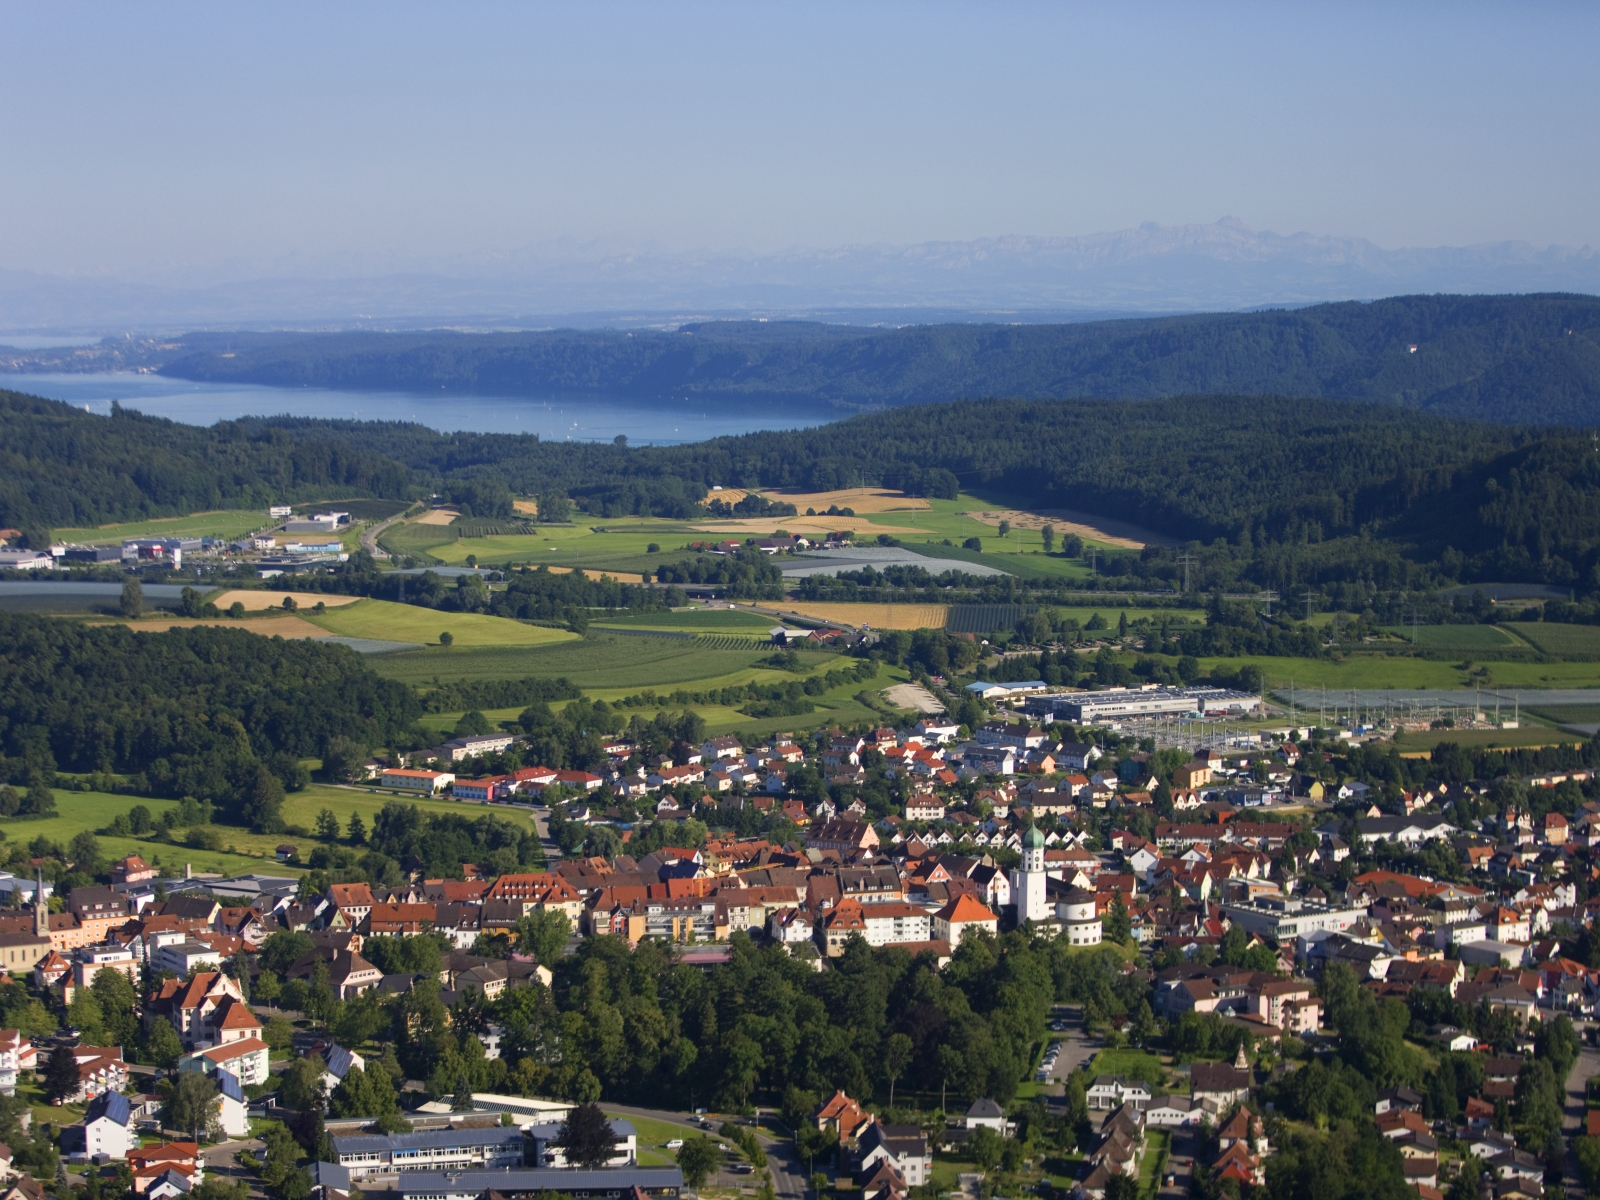 View from Stockach to the Lake Constance